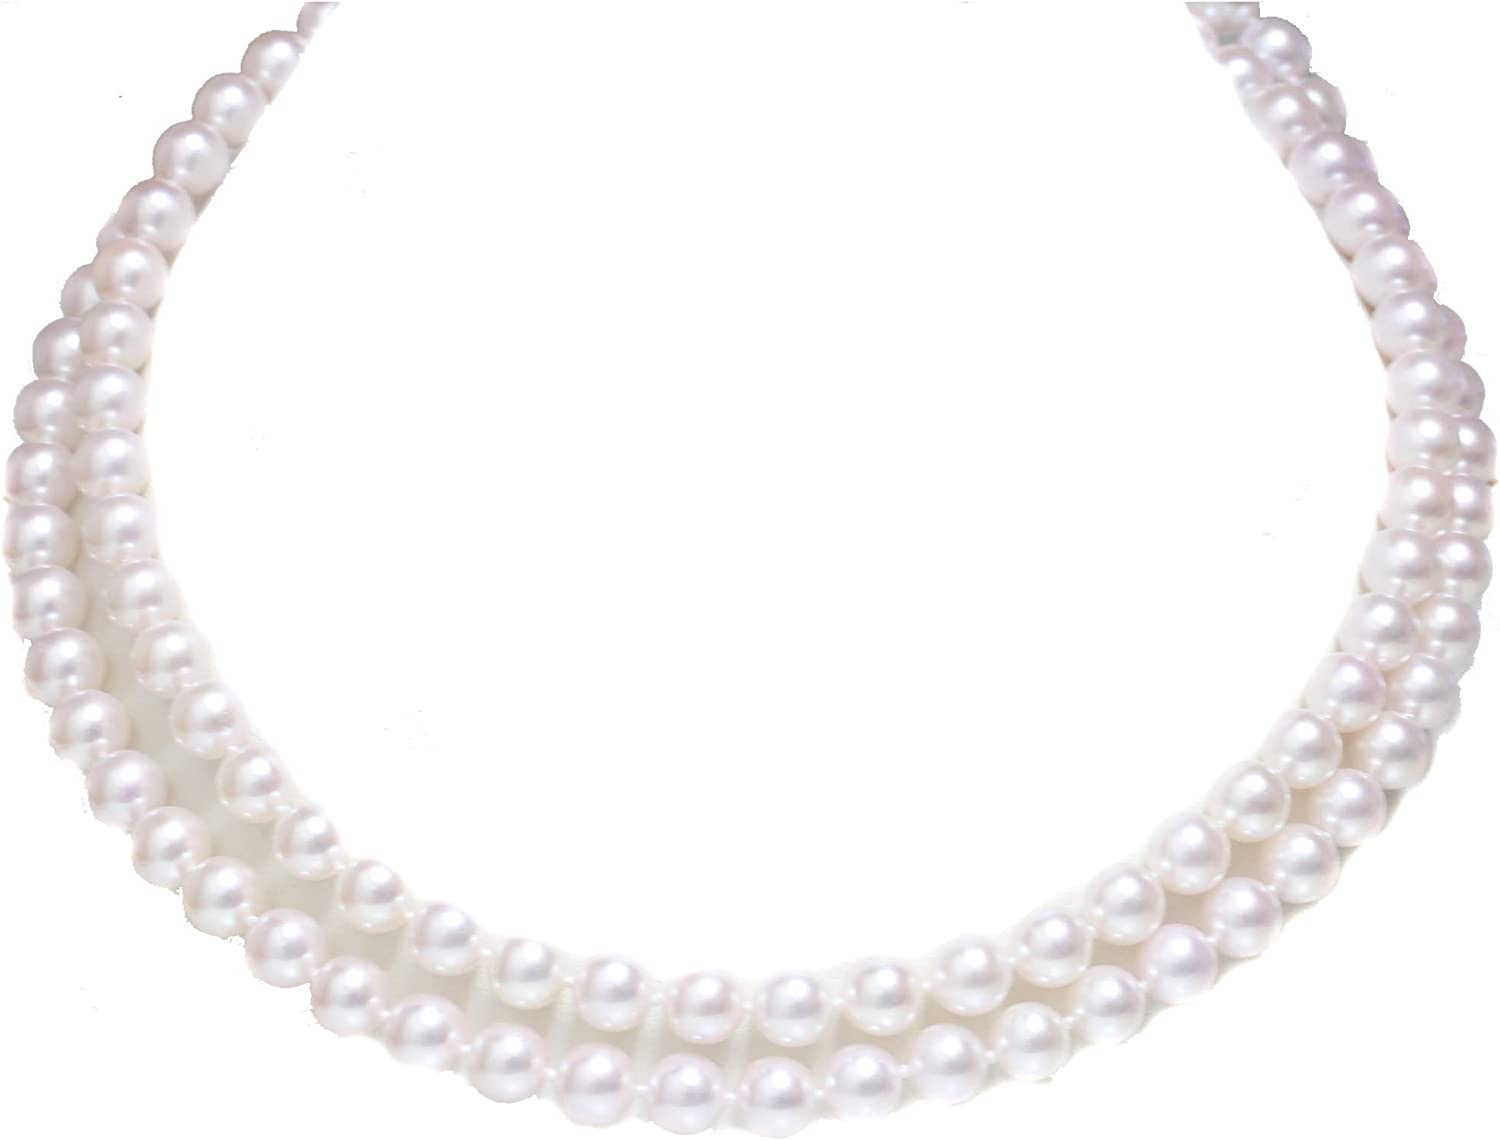 Akoya Pearl Opera Necklace 8-7.5 MM AAA Hanadama Quality 14k Solid Yellow Gold 36 Gift For Women